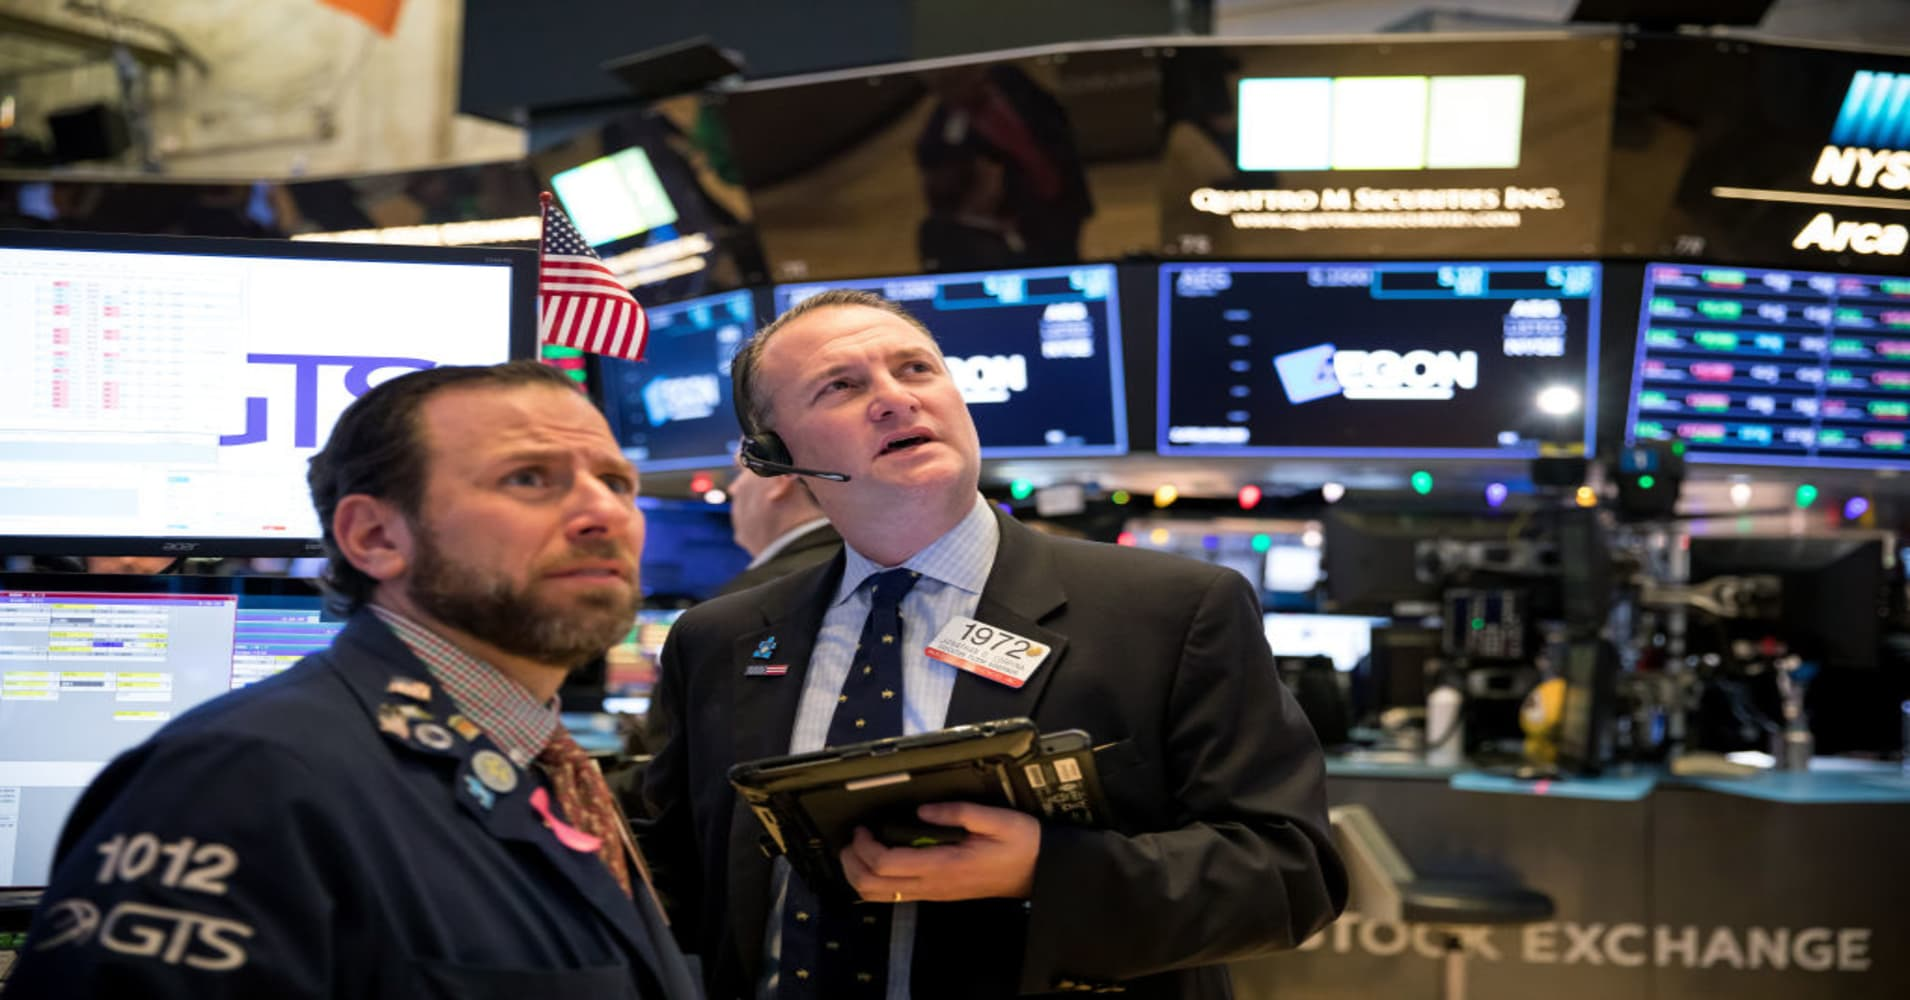 Four experts weigh in on key market factors for 2019. Here's what you need to know